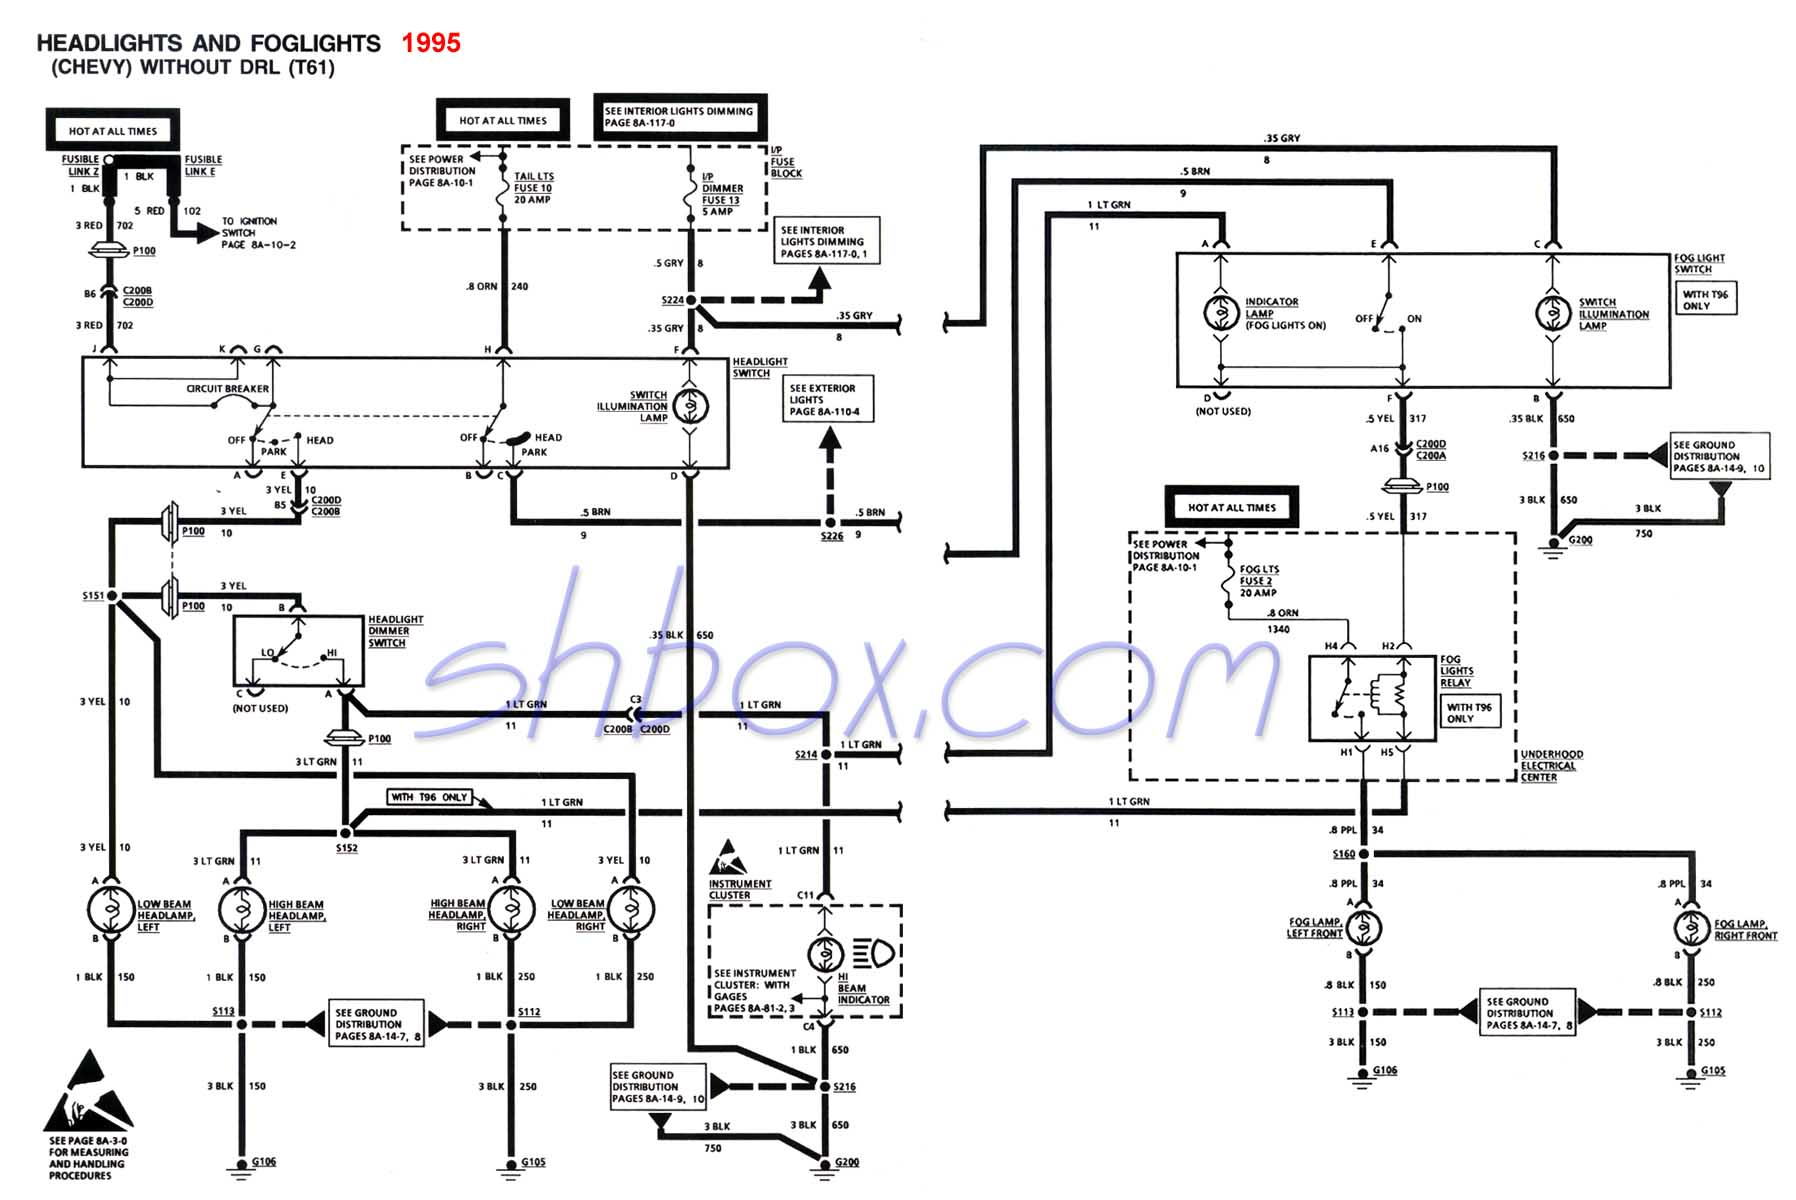 hight resolution of 2002 camaro wiring diagram data schematic diagram 2002 camaro wiring diagram blog wiring diagram 2002 camaro